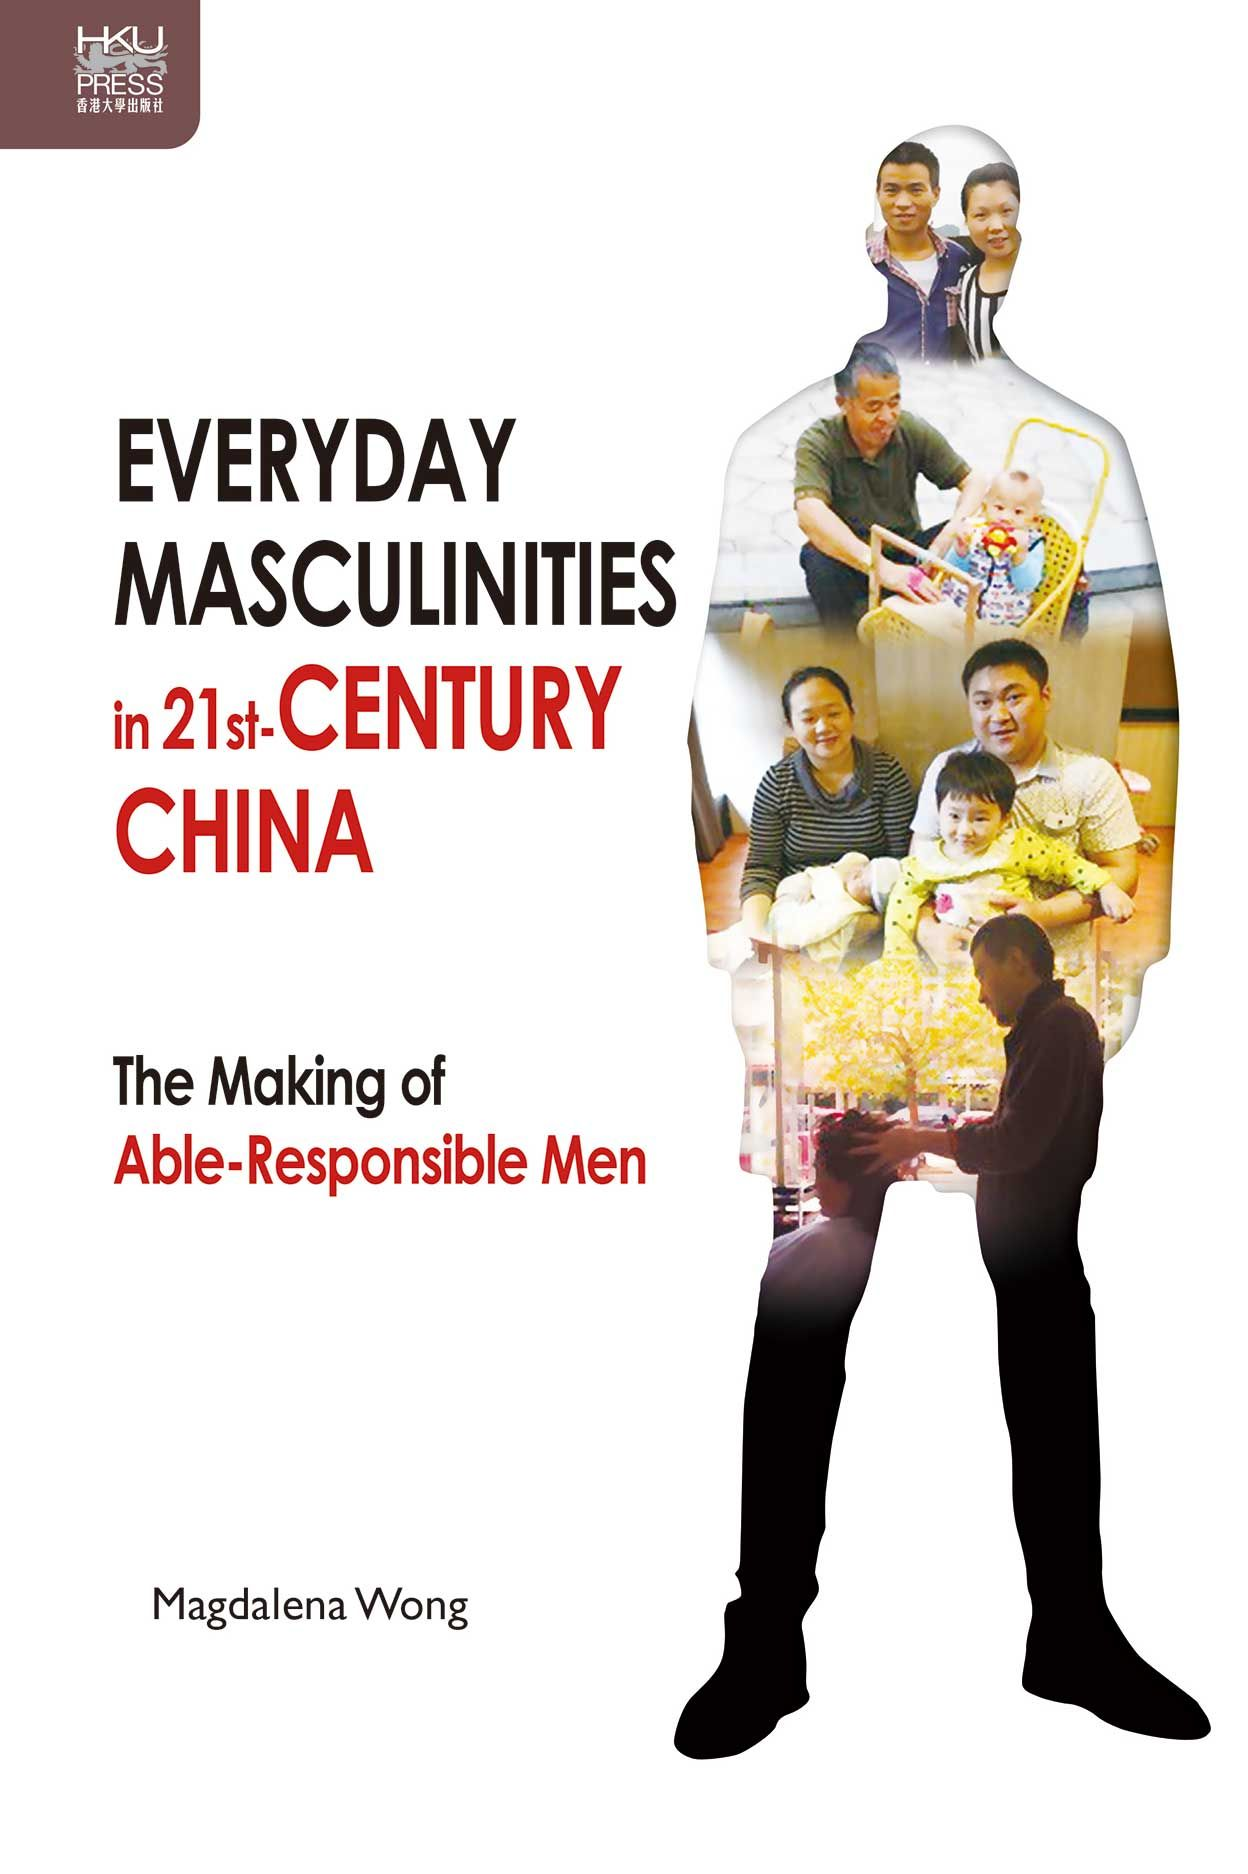 Everyday Masculinities in 21st-Century China